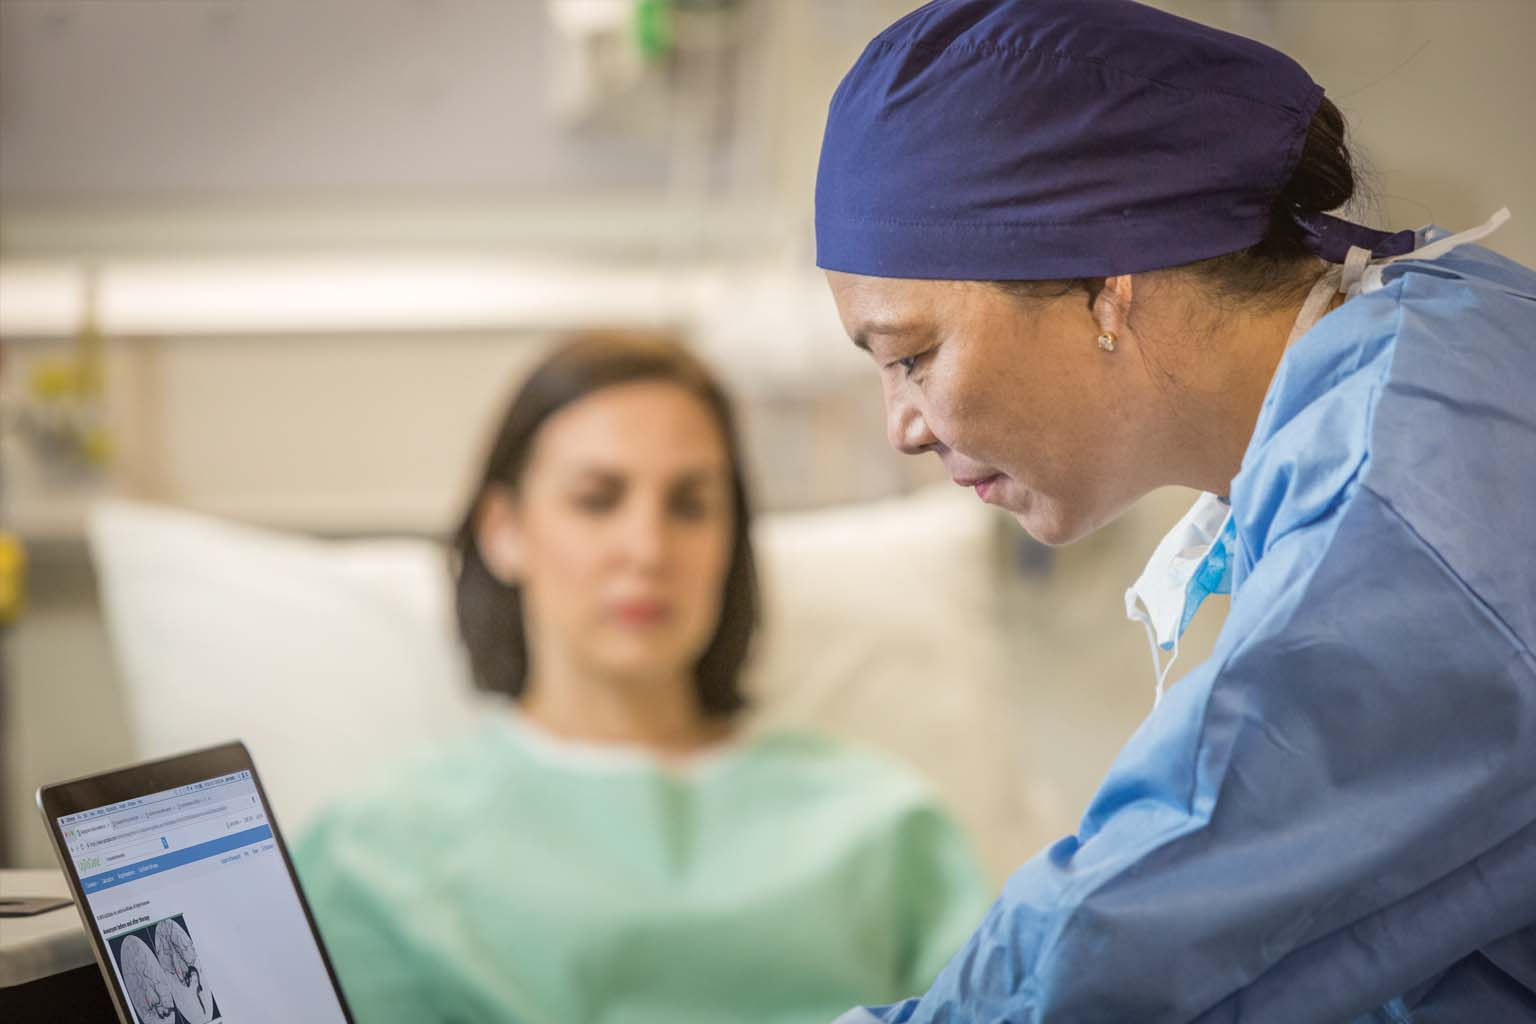 surgeon viewing UpToDate on laptop with patient in background